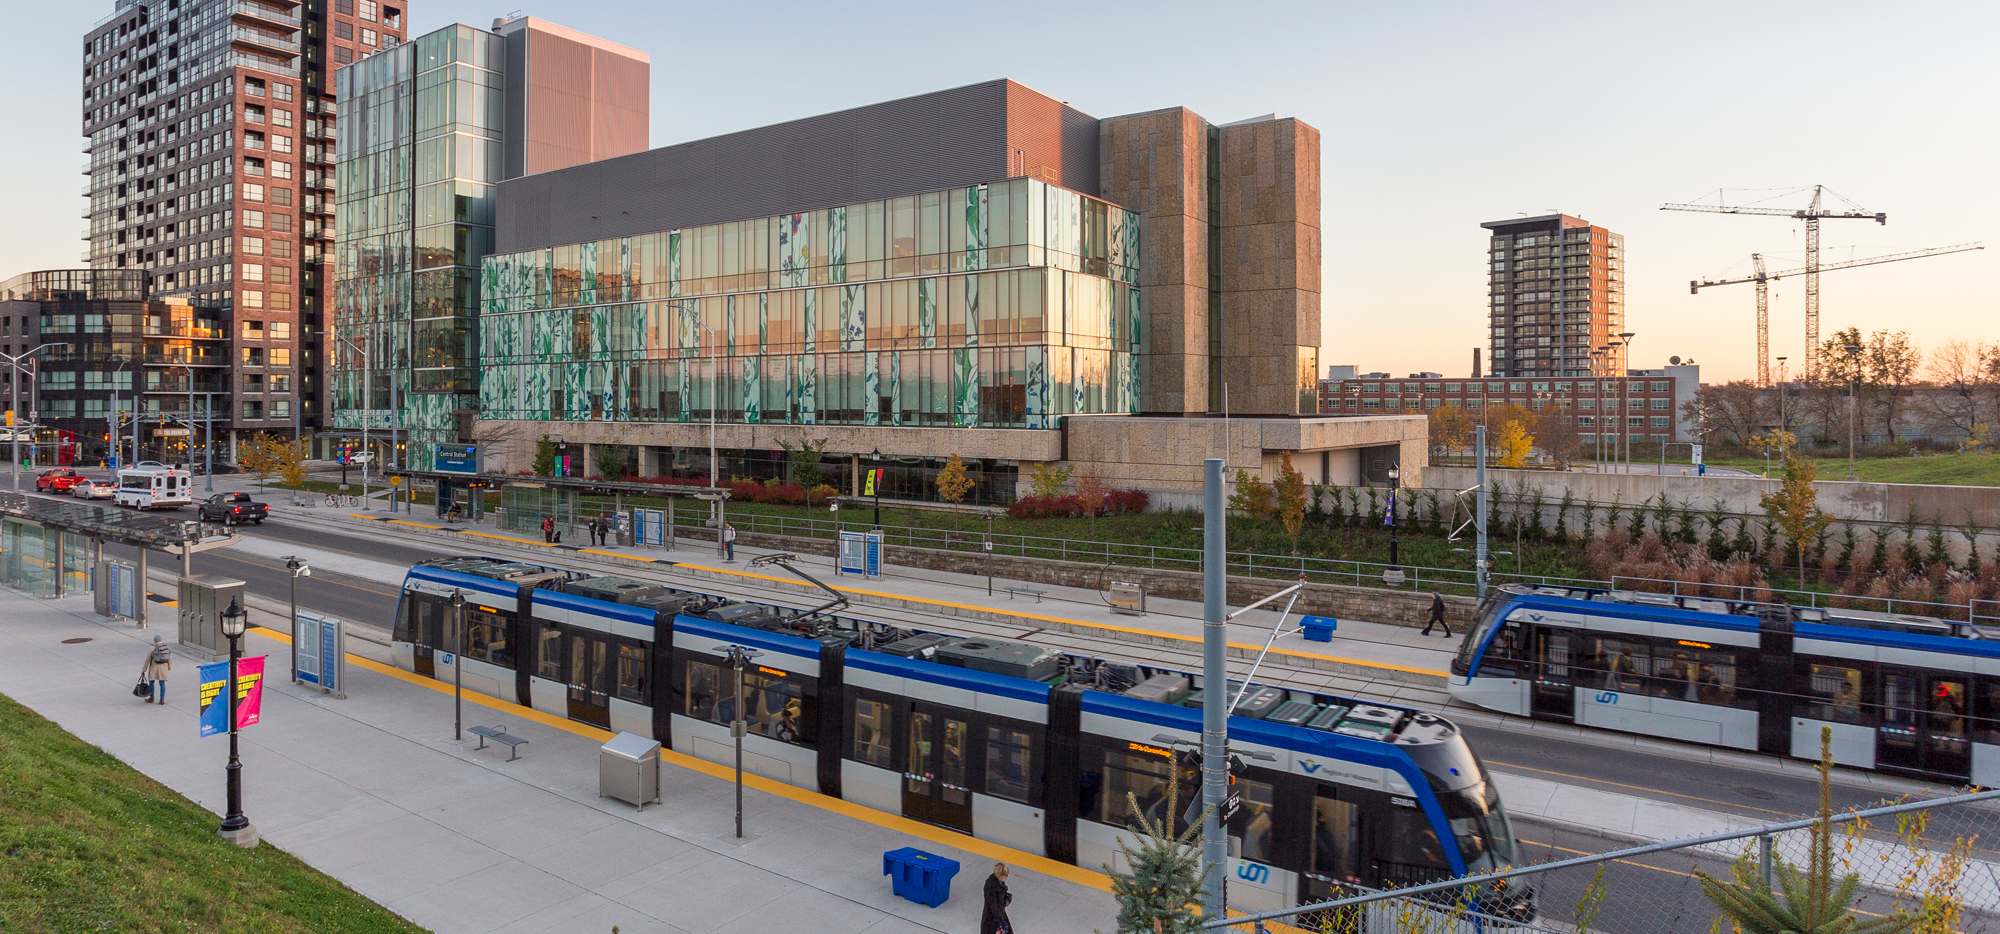 School of Pharmacy building with light rail trains in front of it